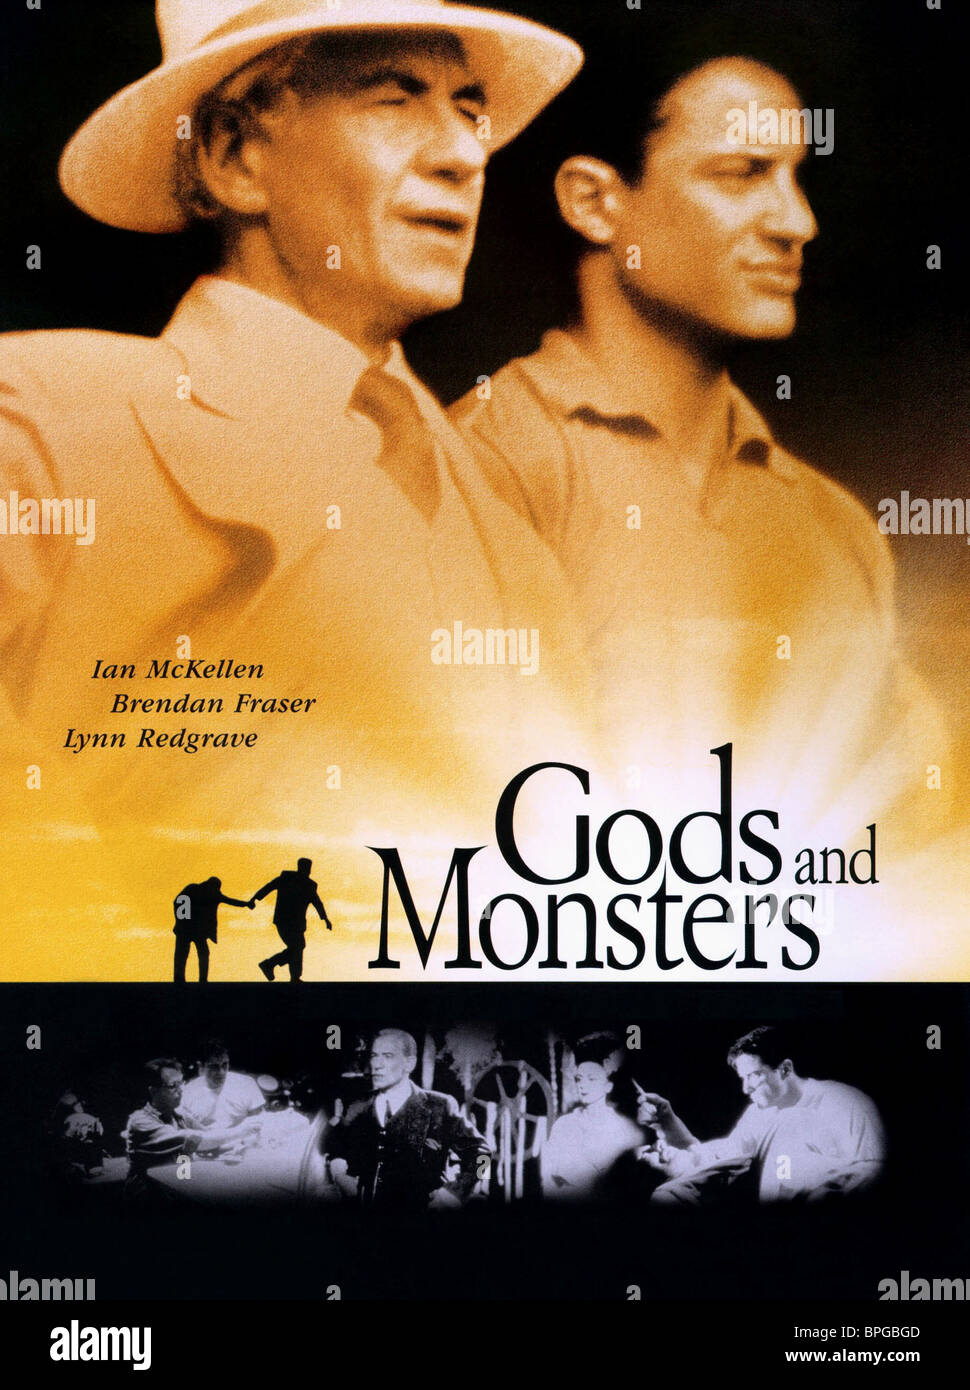 FILM POSTER GODS AND MONSTERS (1998) - Stock Image